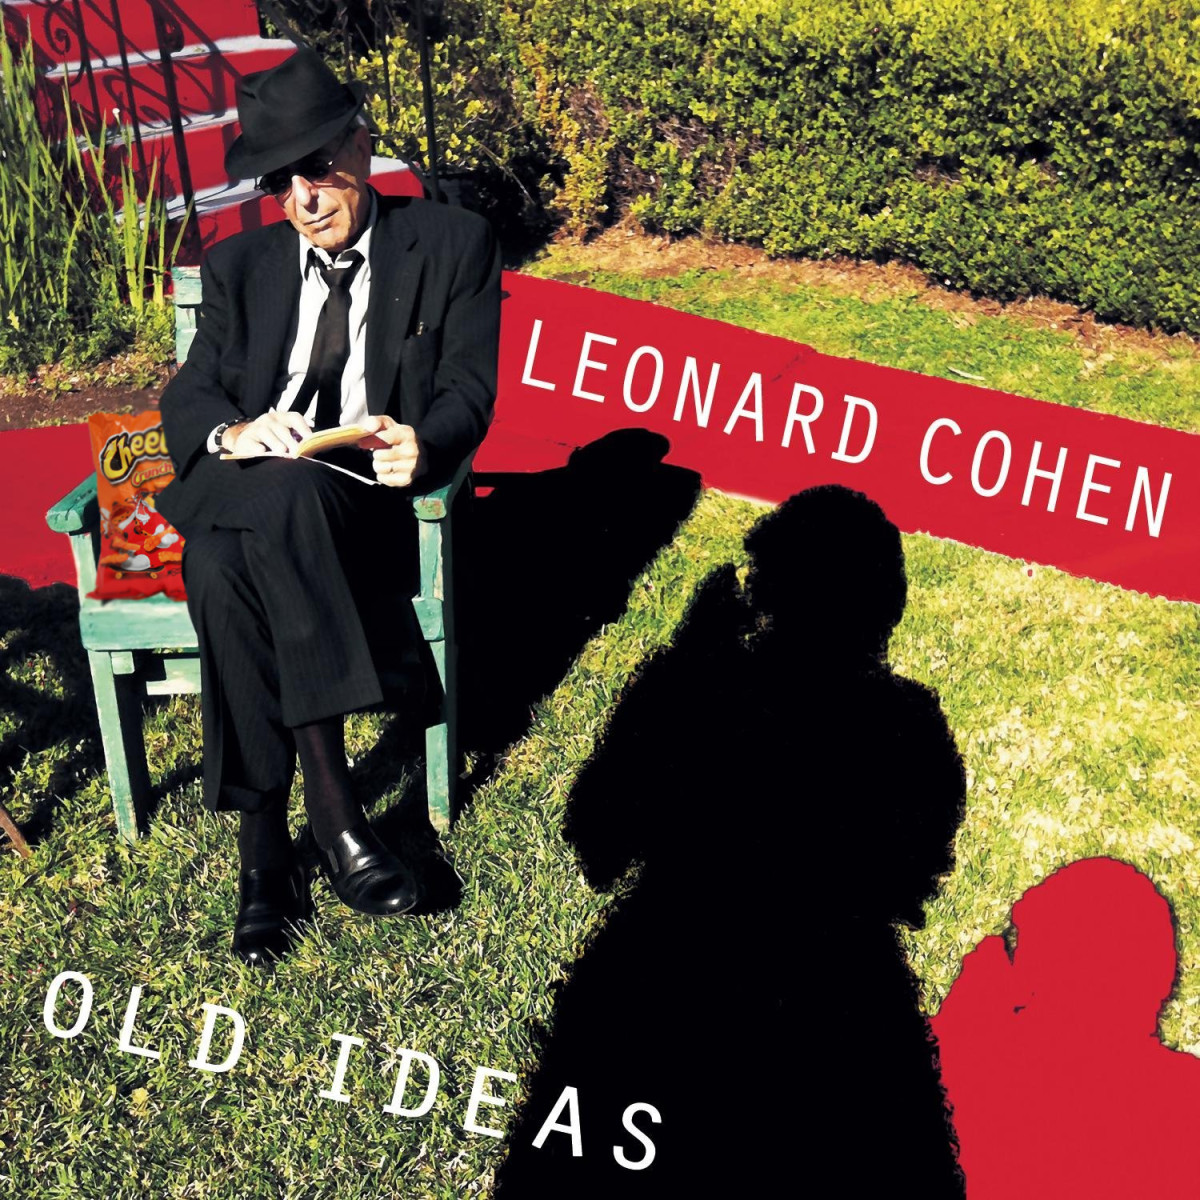 best Leonard Cohen songs Old Ideas